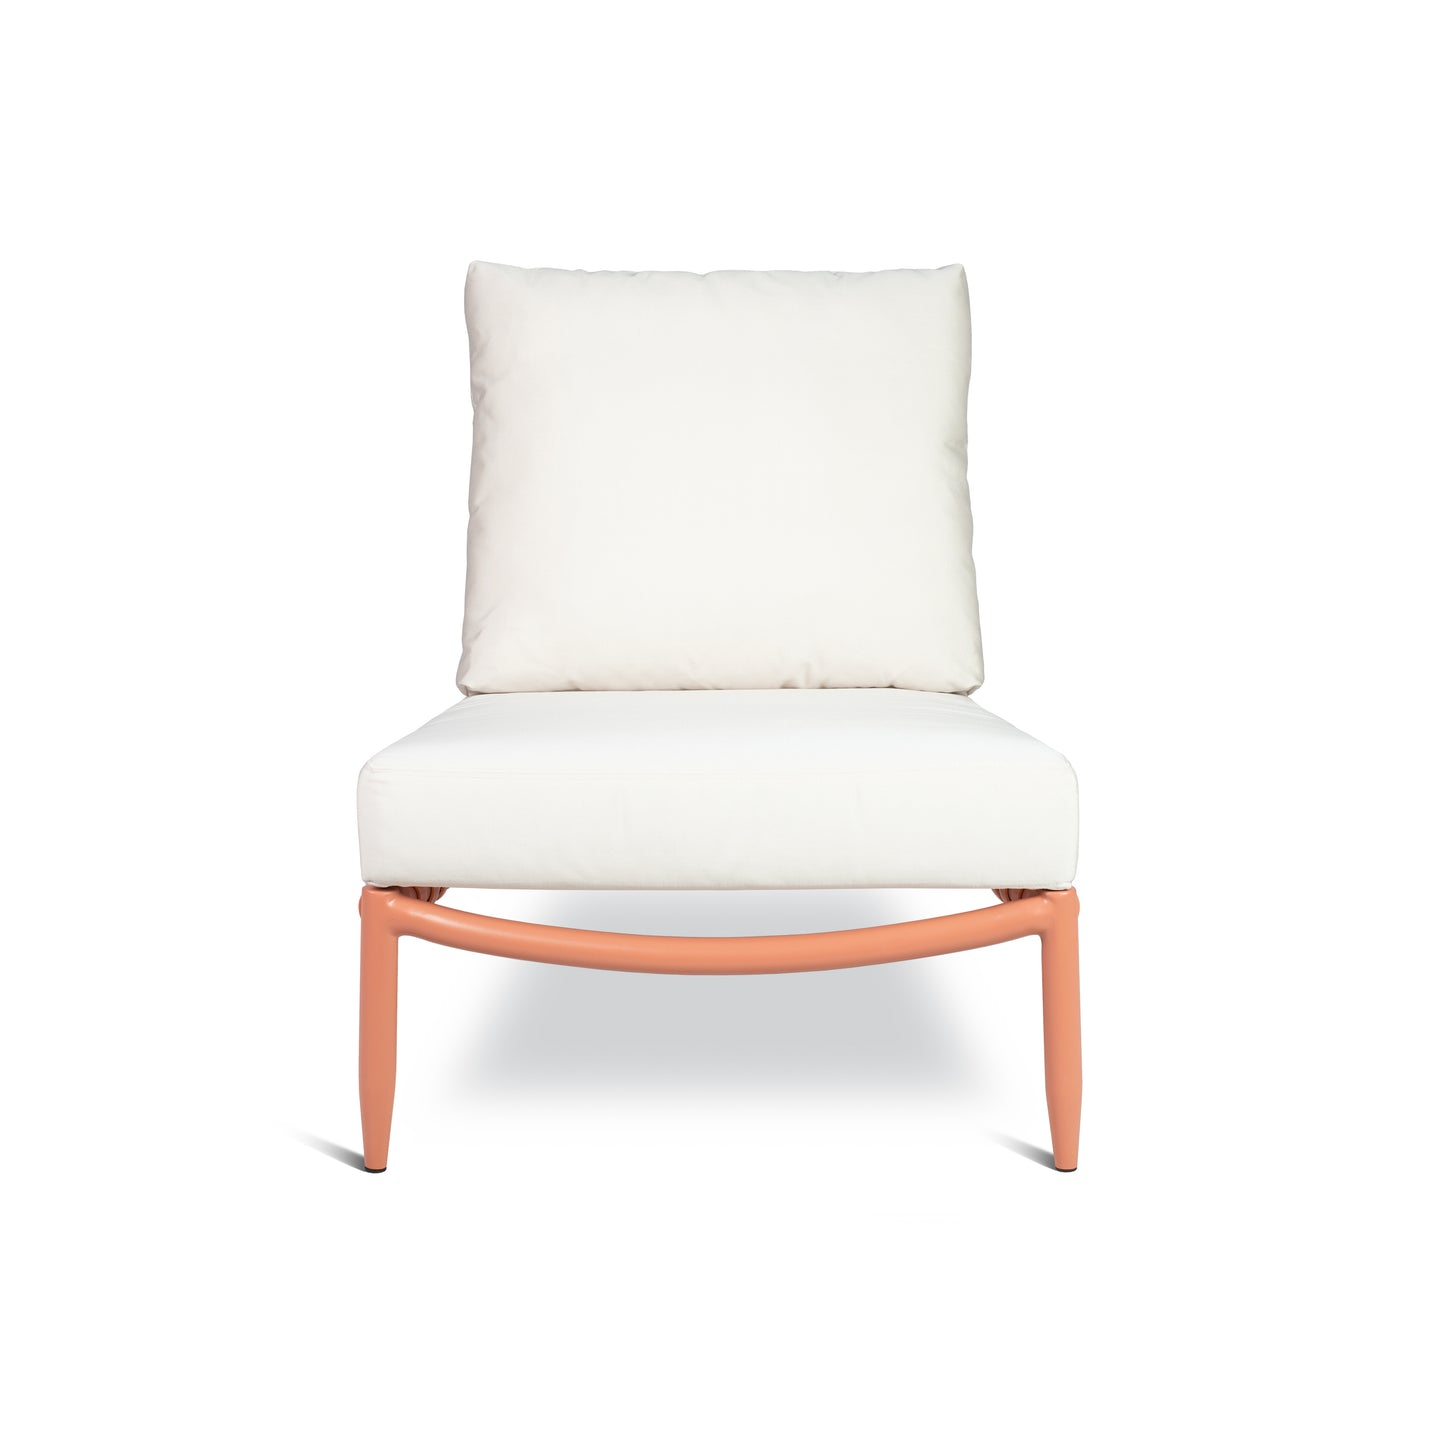 PERRY LOUNGE CHAIR IN CORAL